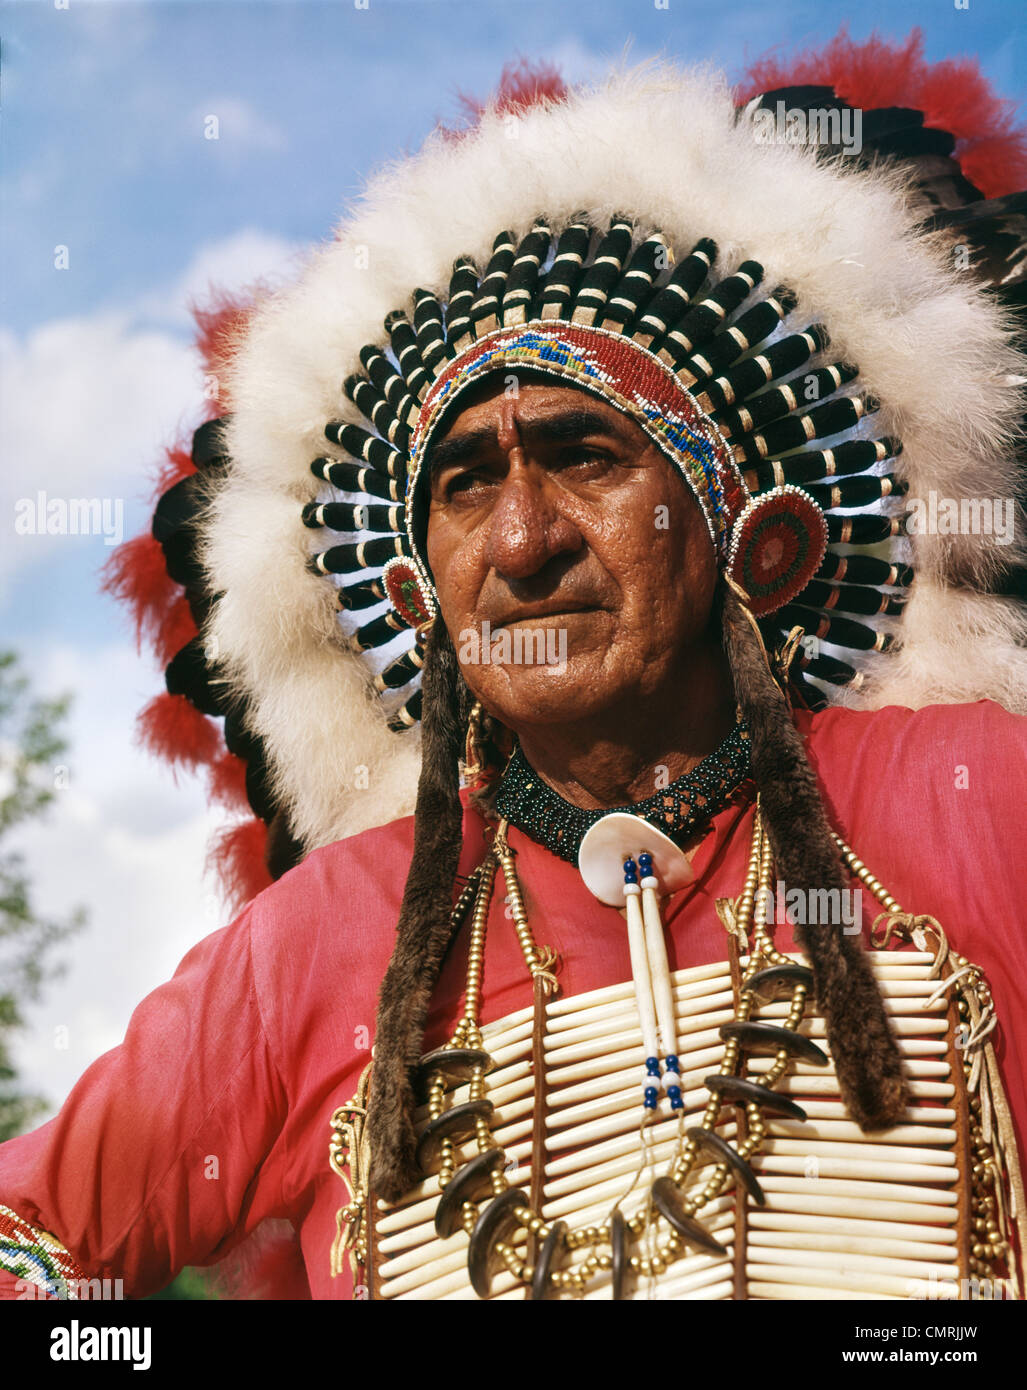 PORTRAIT OF SIOUX INDIAN CHIEF BIG CLOUD HEADDRESS NATIVE AMERICAN OUTDOOR - Stock Image